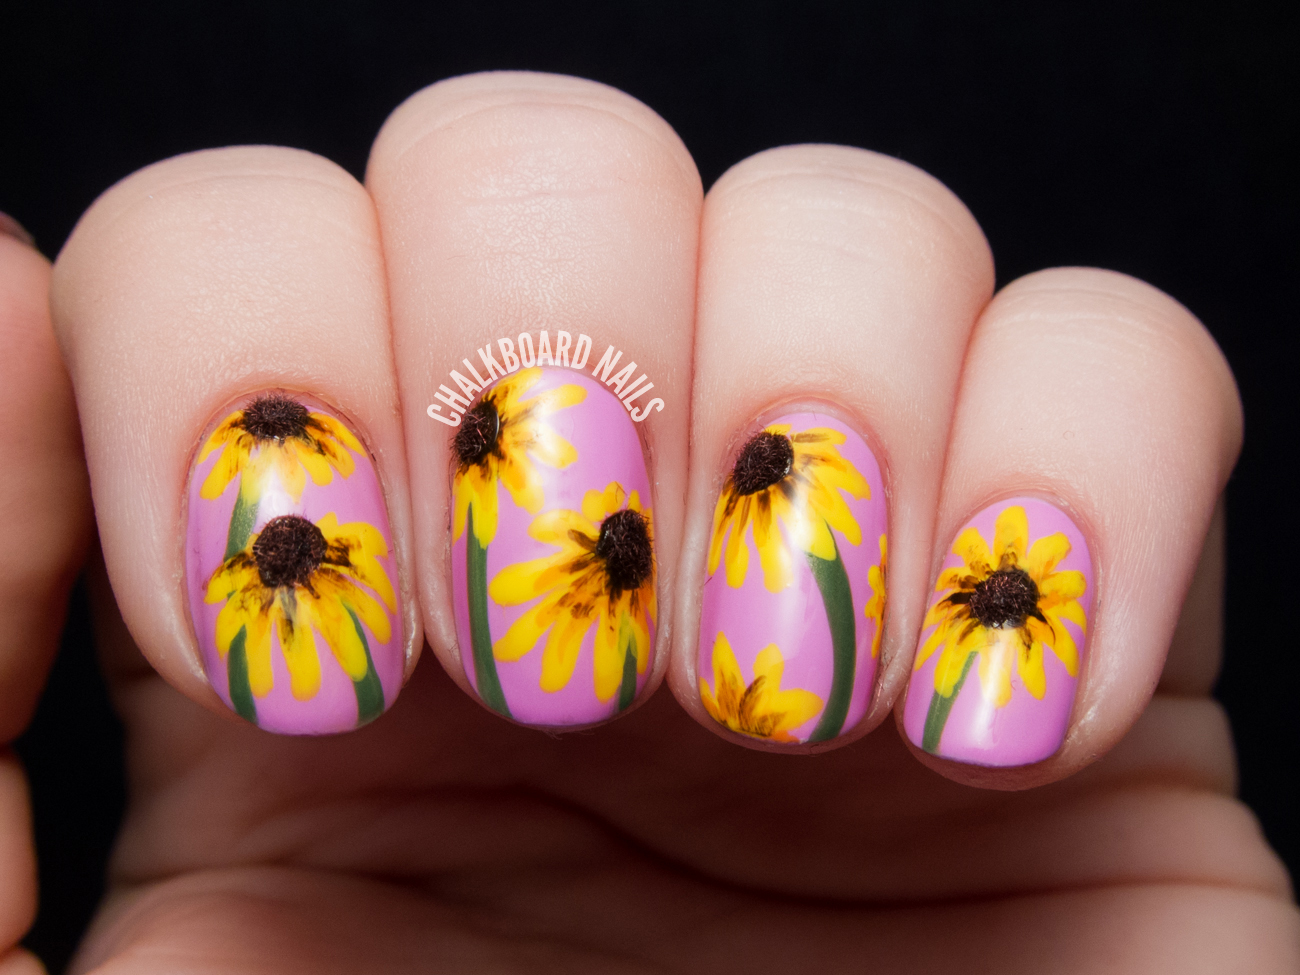 Black Eyed Susan Nail Art by @chalkboardnails